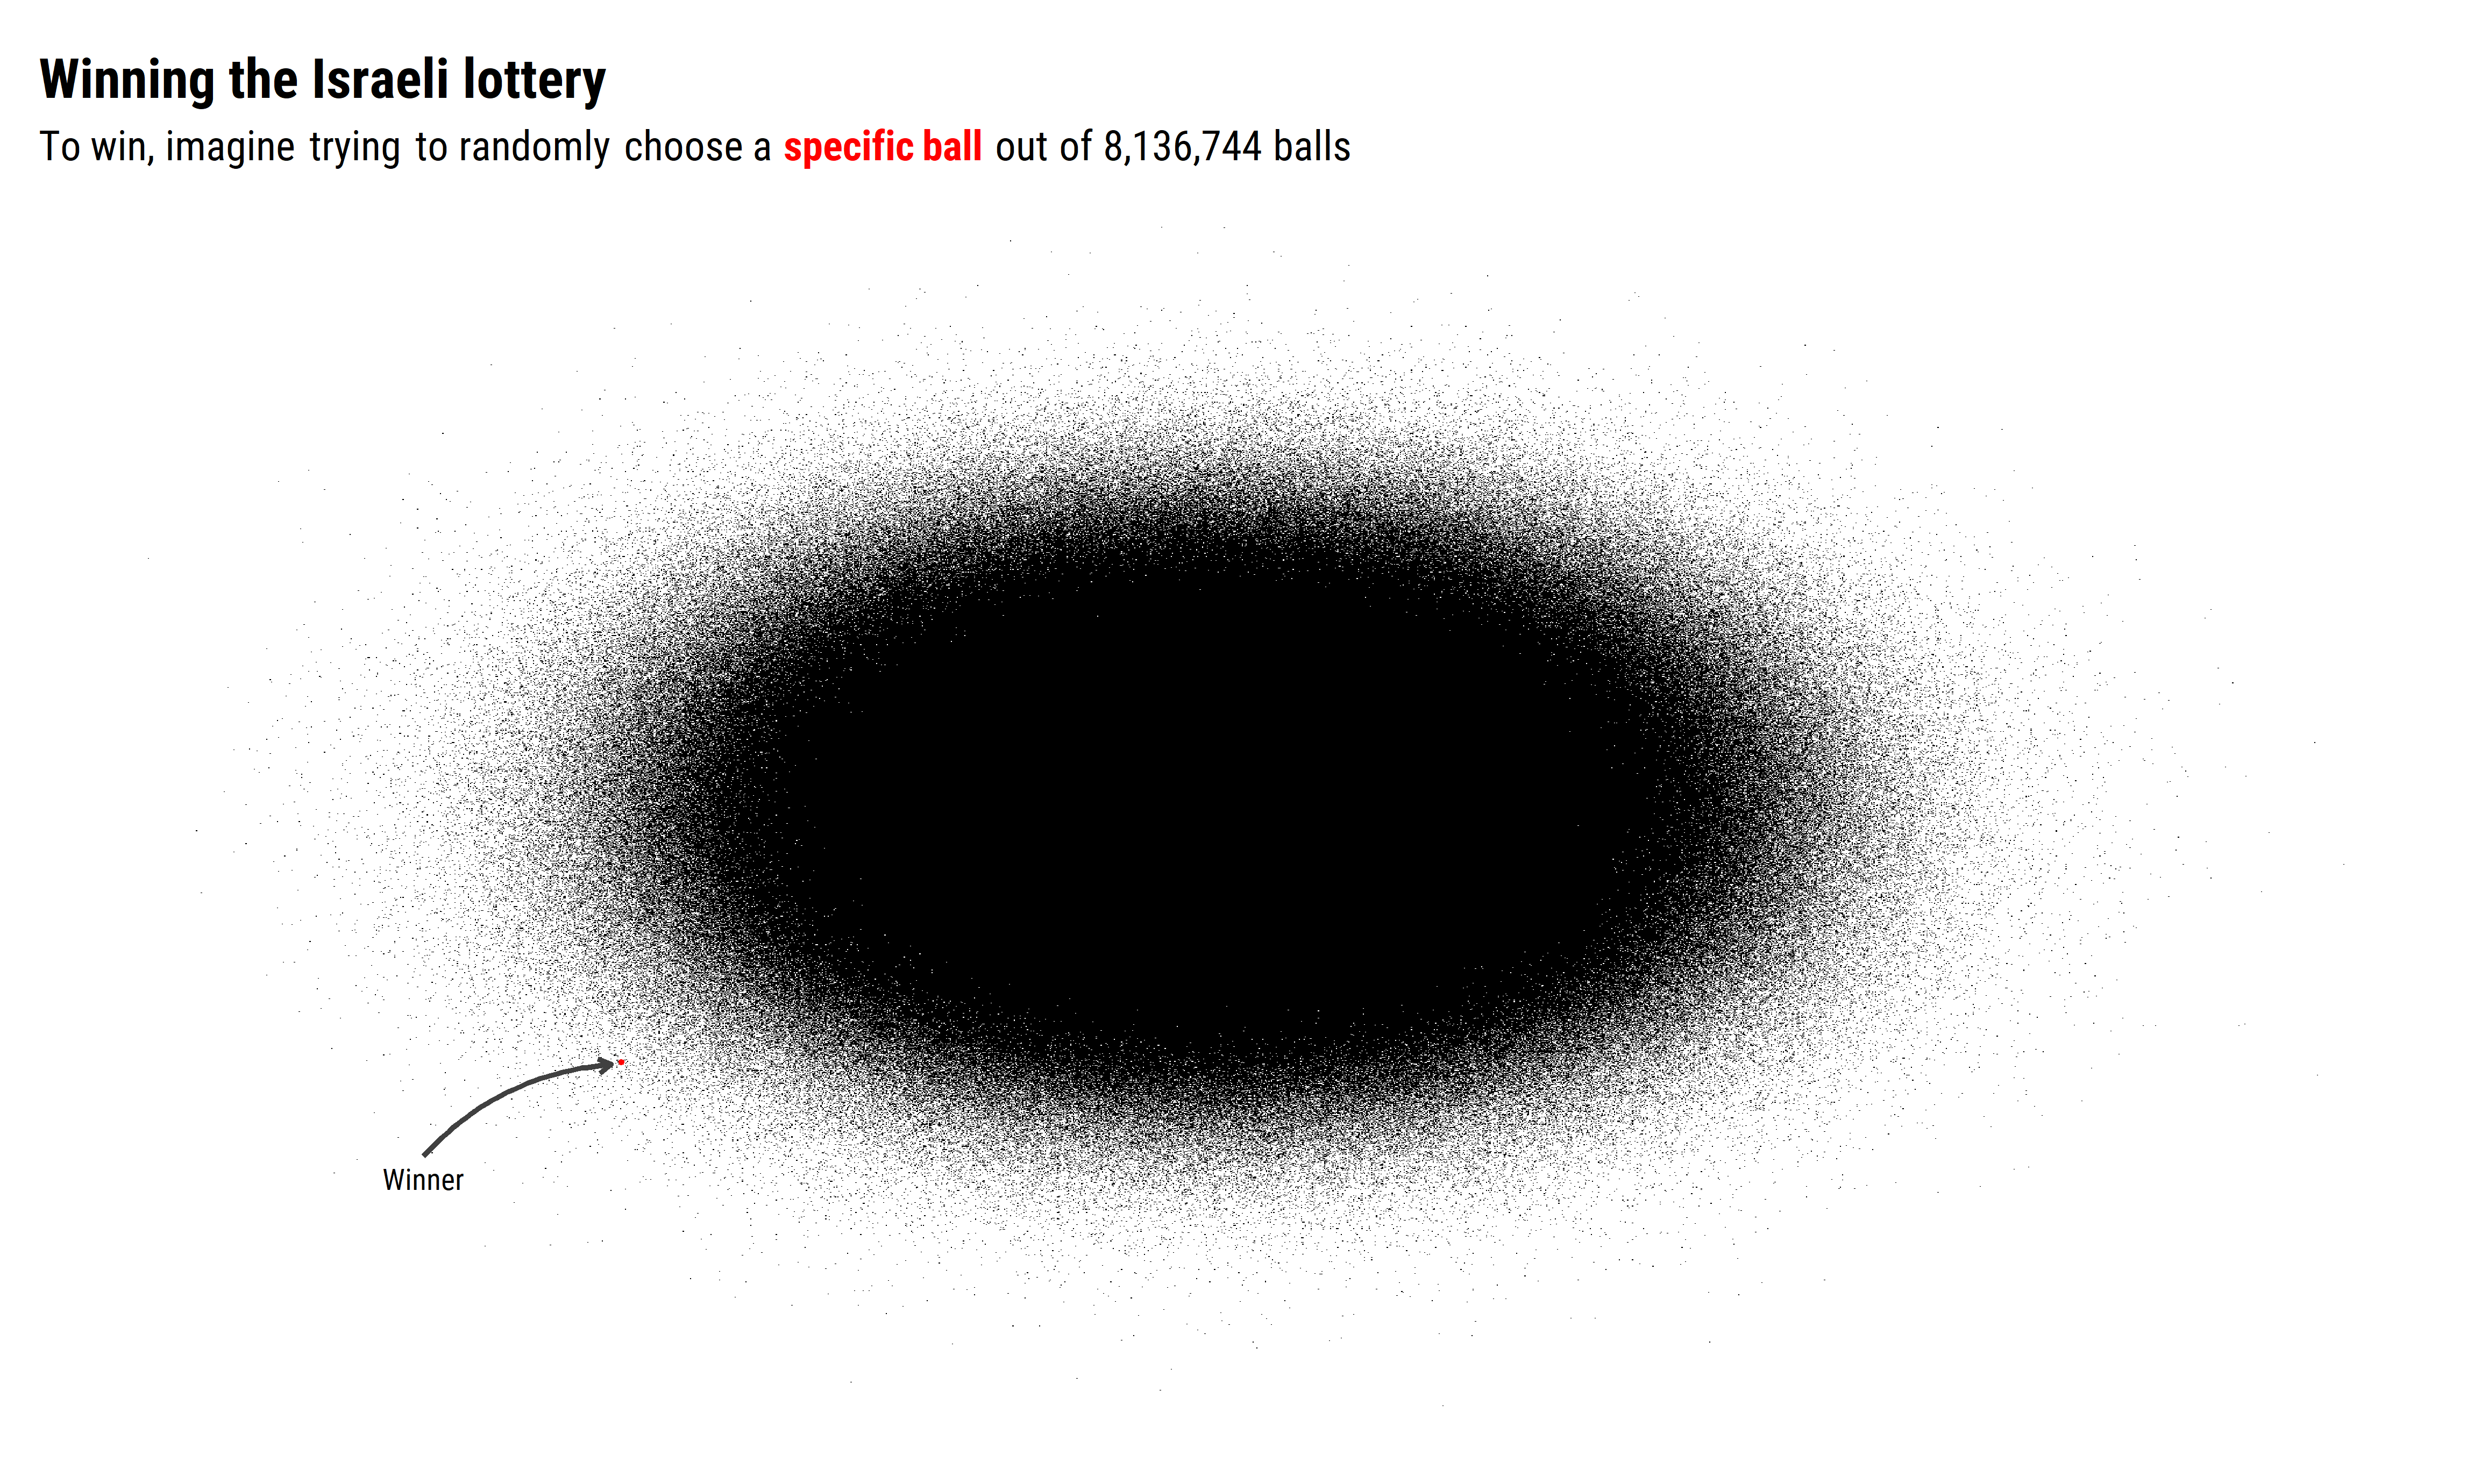 img of over 8 million points and one of them in red, representing the low probability of winning the lottery.